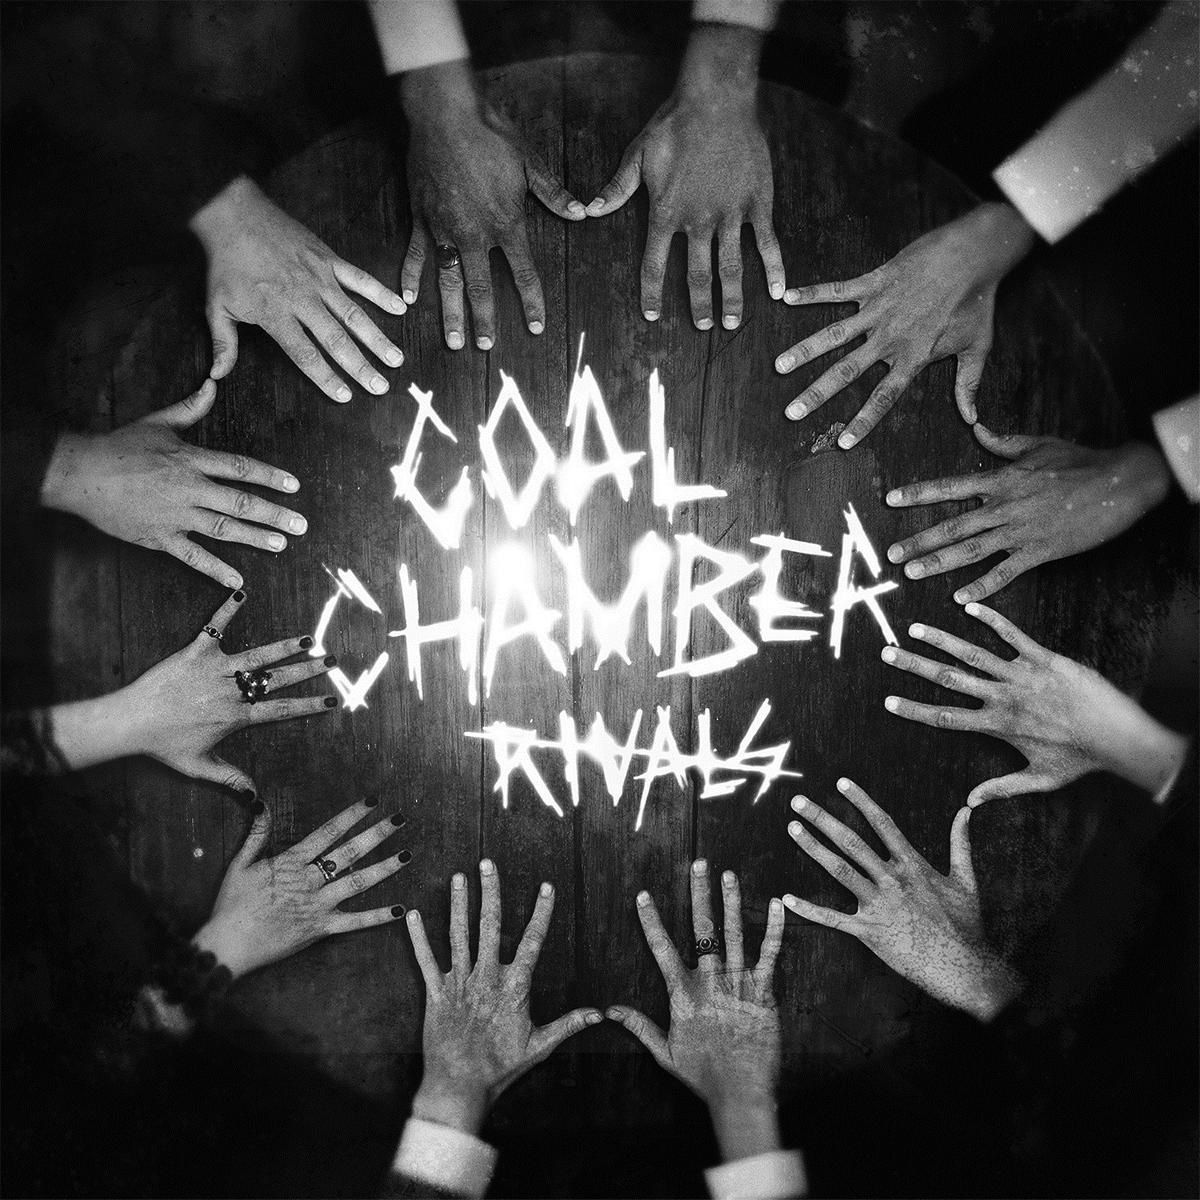 Cover and tracklist from new COAL CHAMBER album